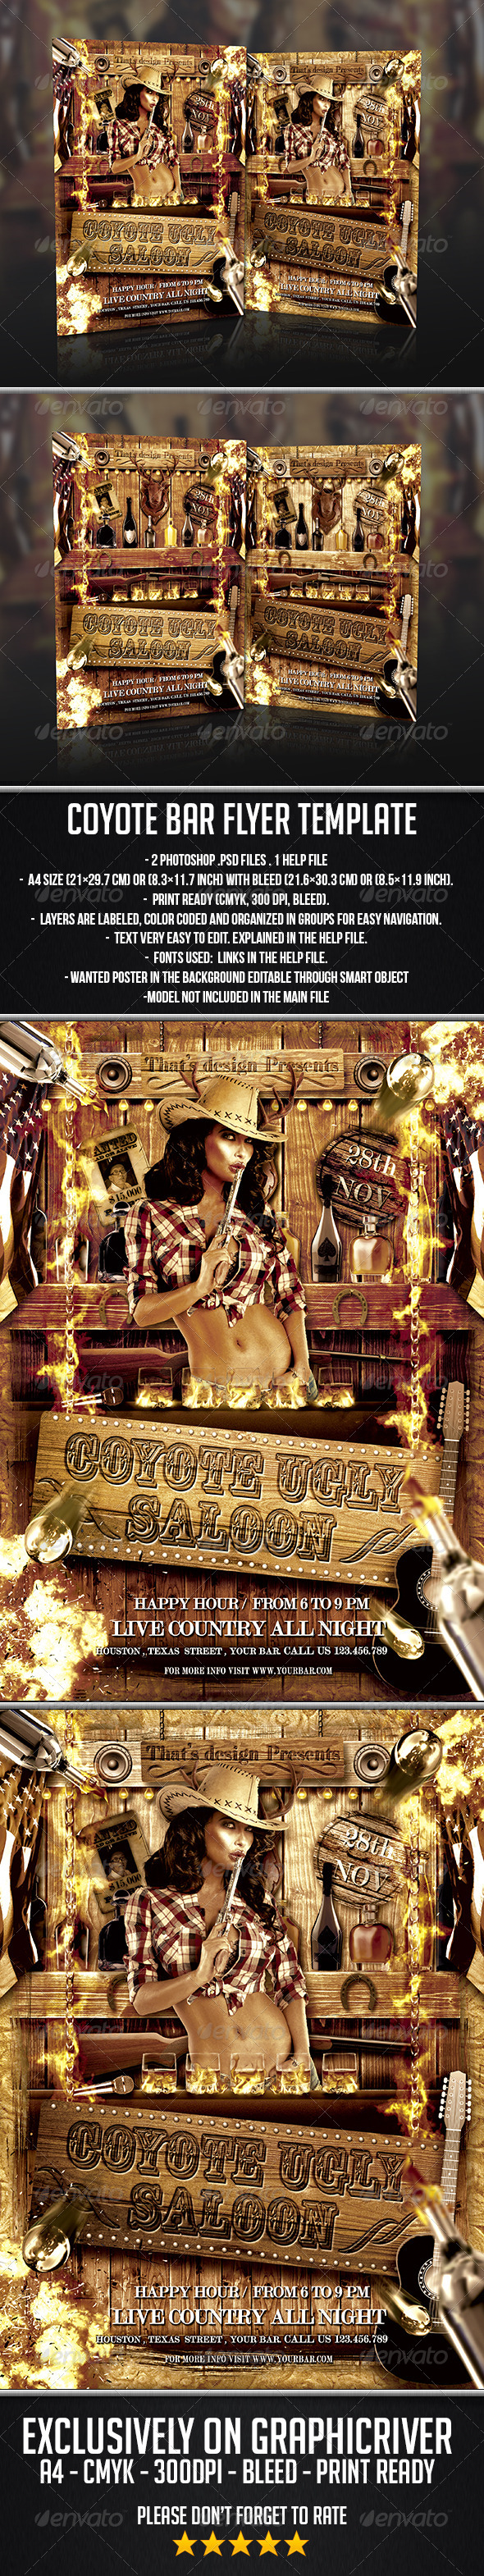 GraphicRiver Coyote Bar Flyer Template 7364462